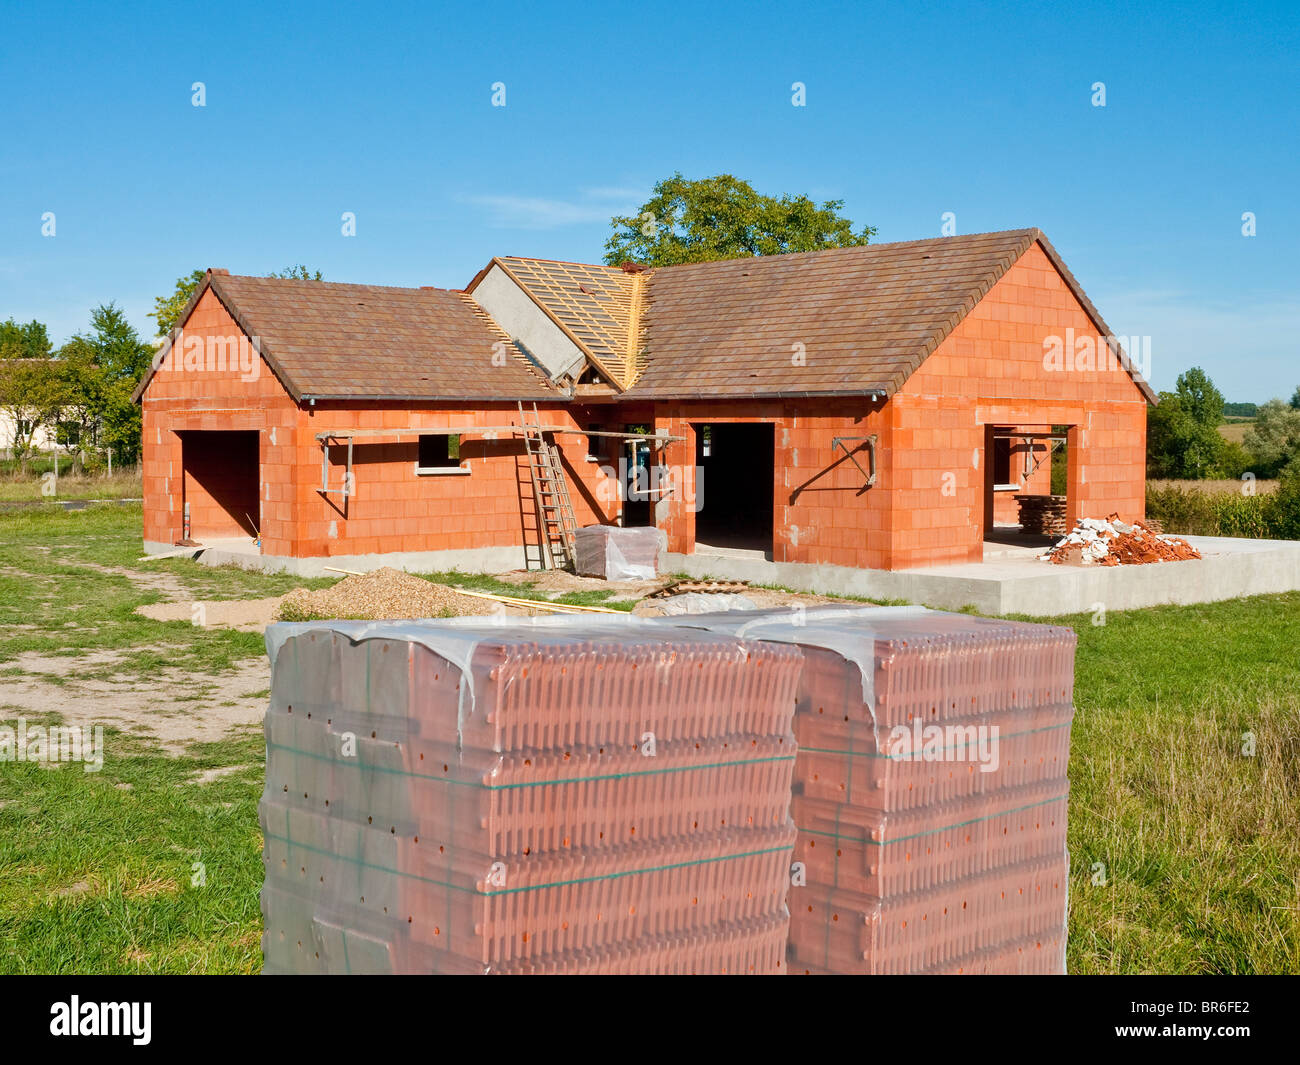 New Bungalow Pitched Roof Construction Stock Photos Amp New